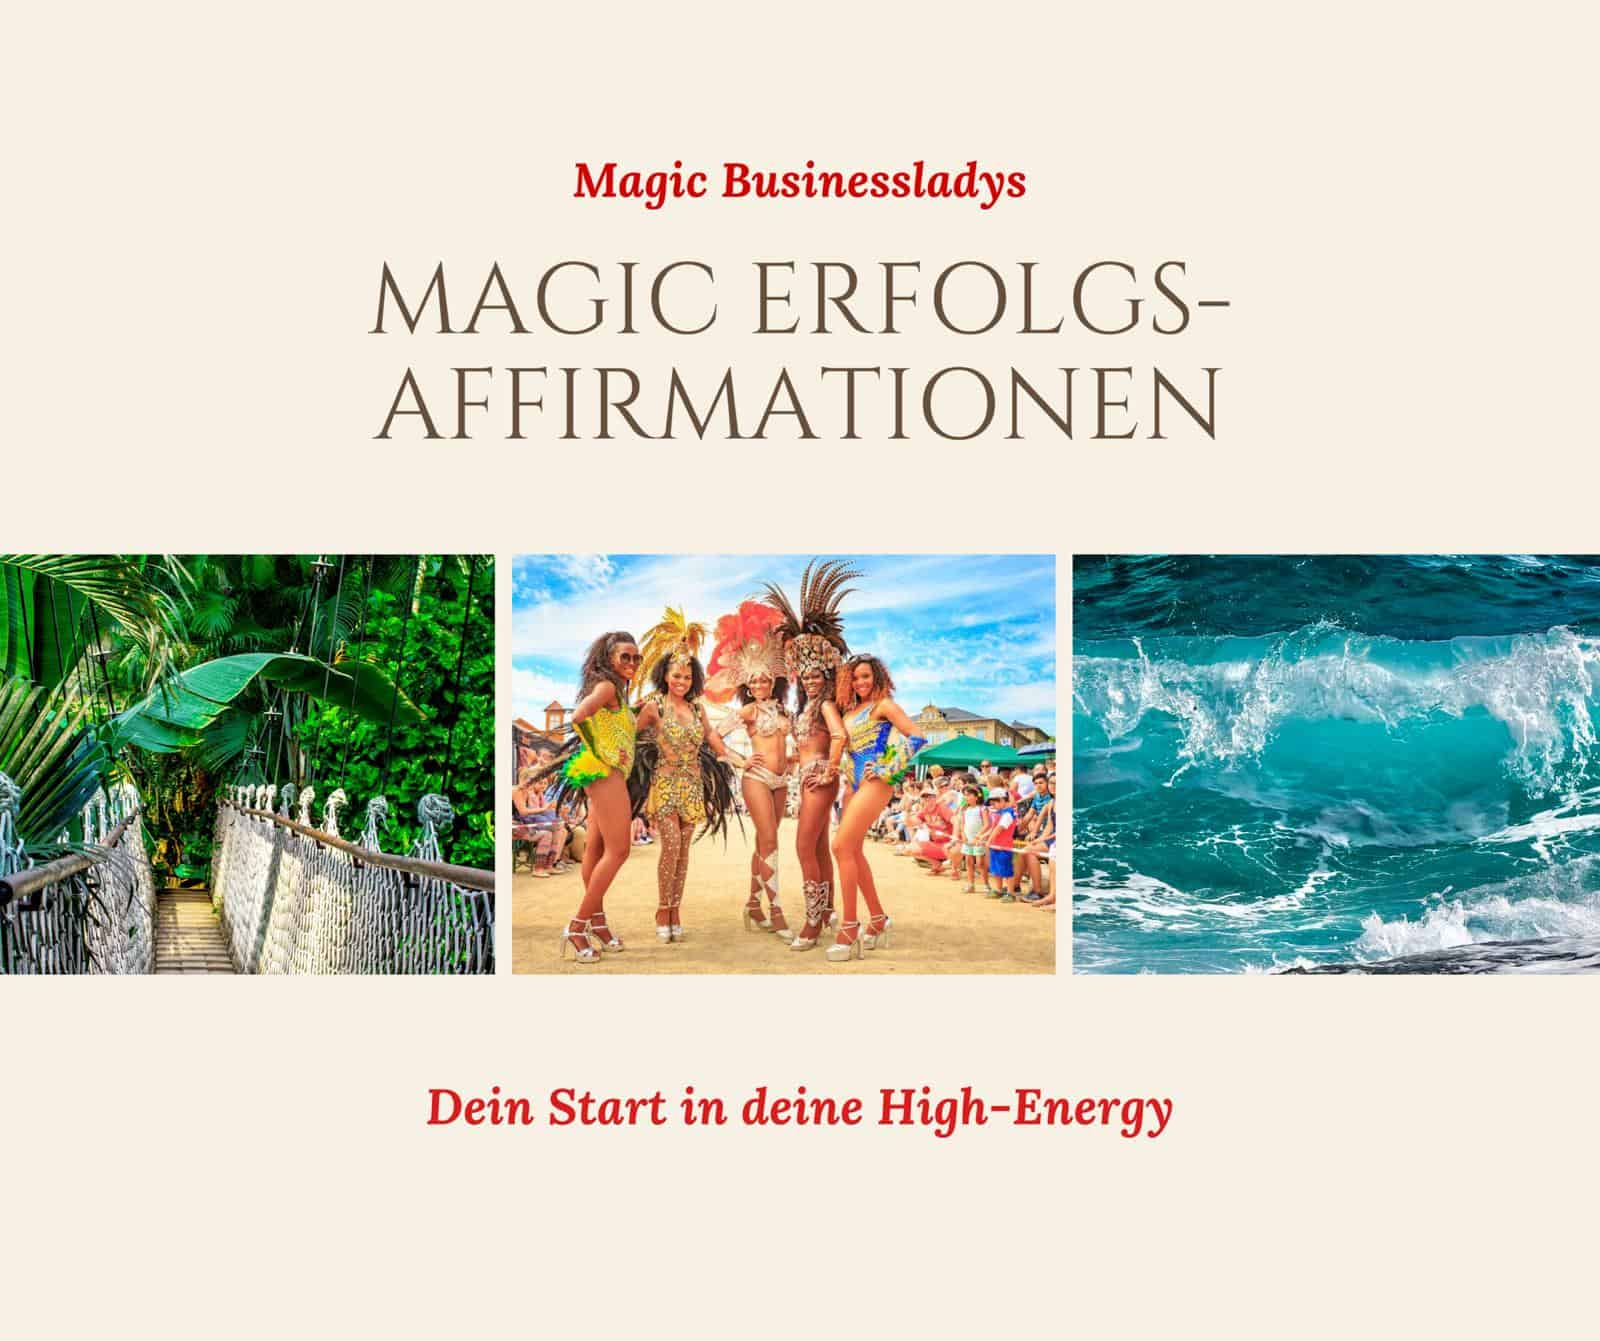 Magic Erfolgs Affirmationen